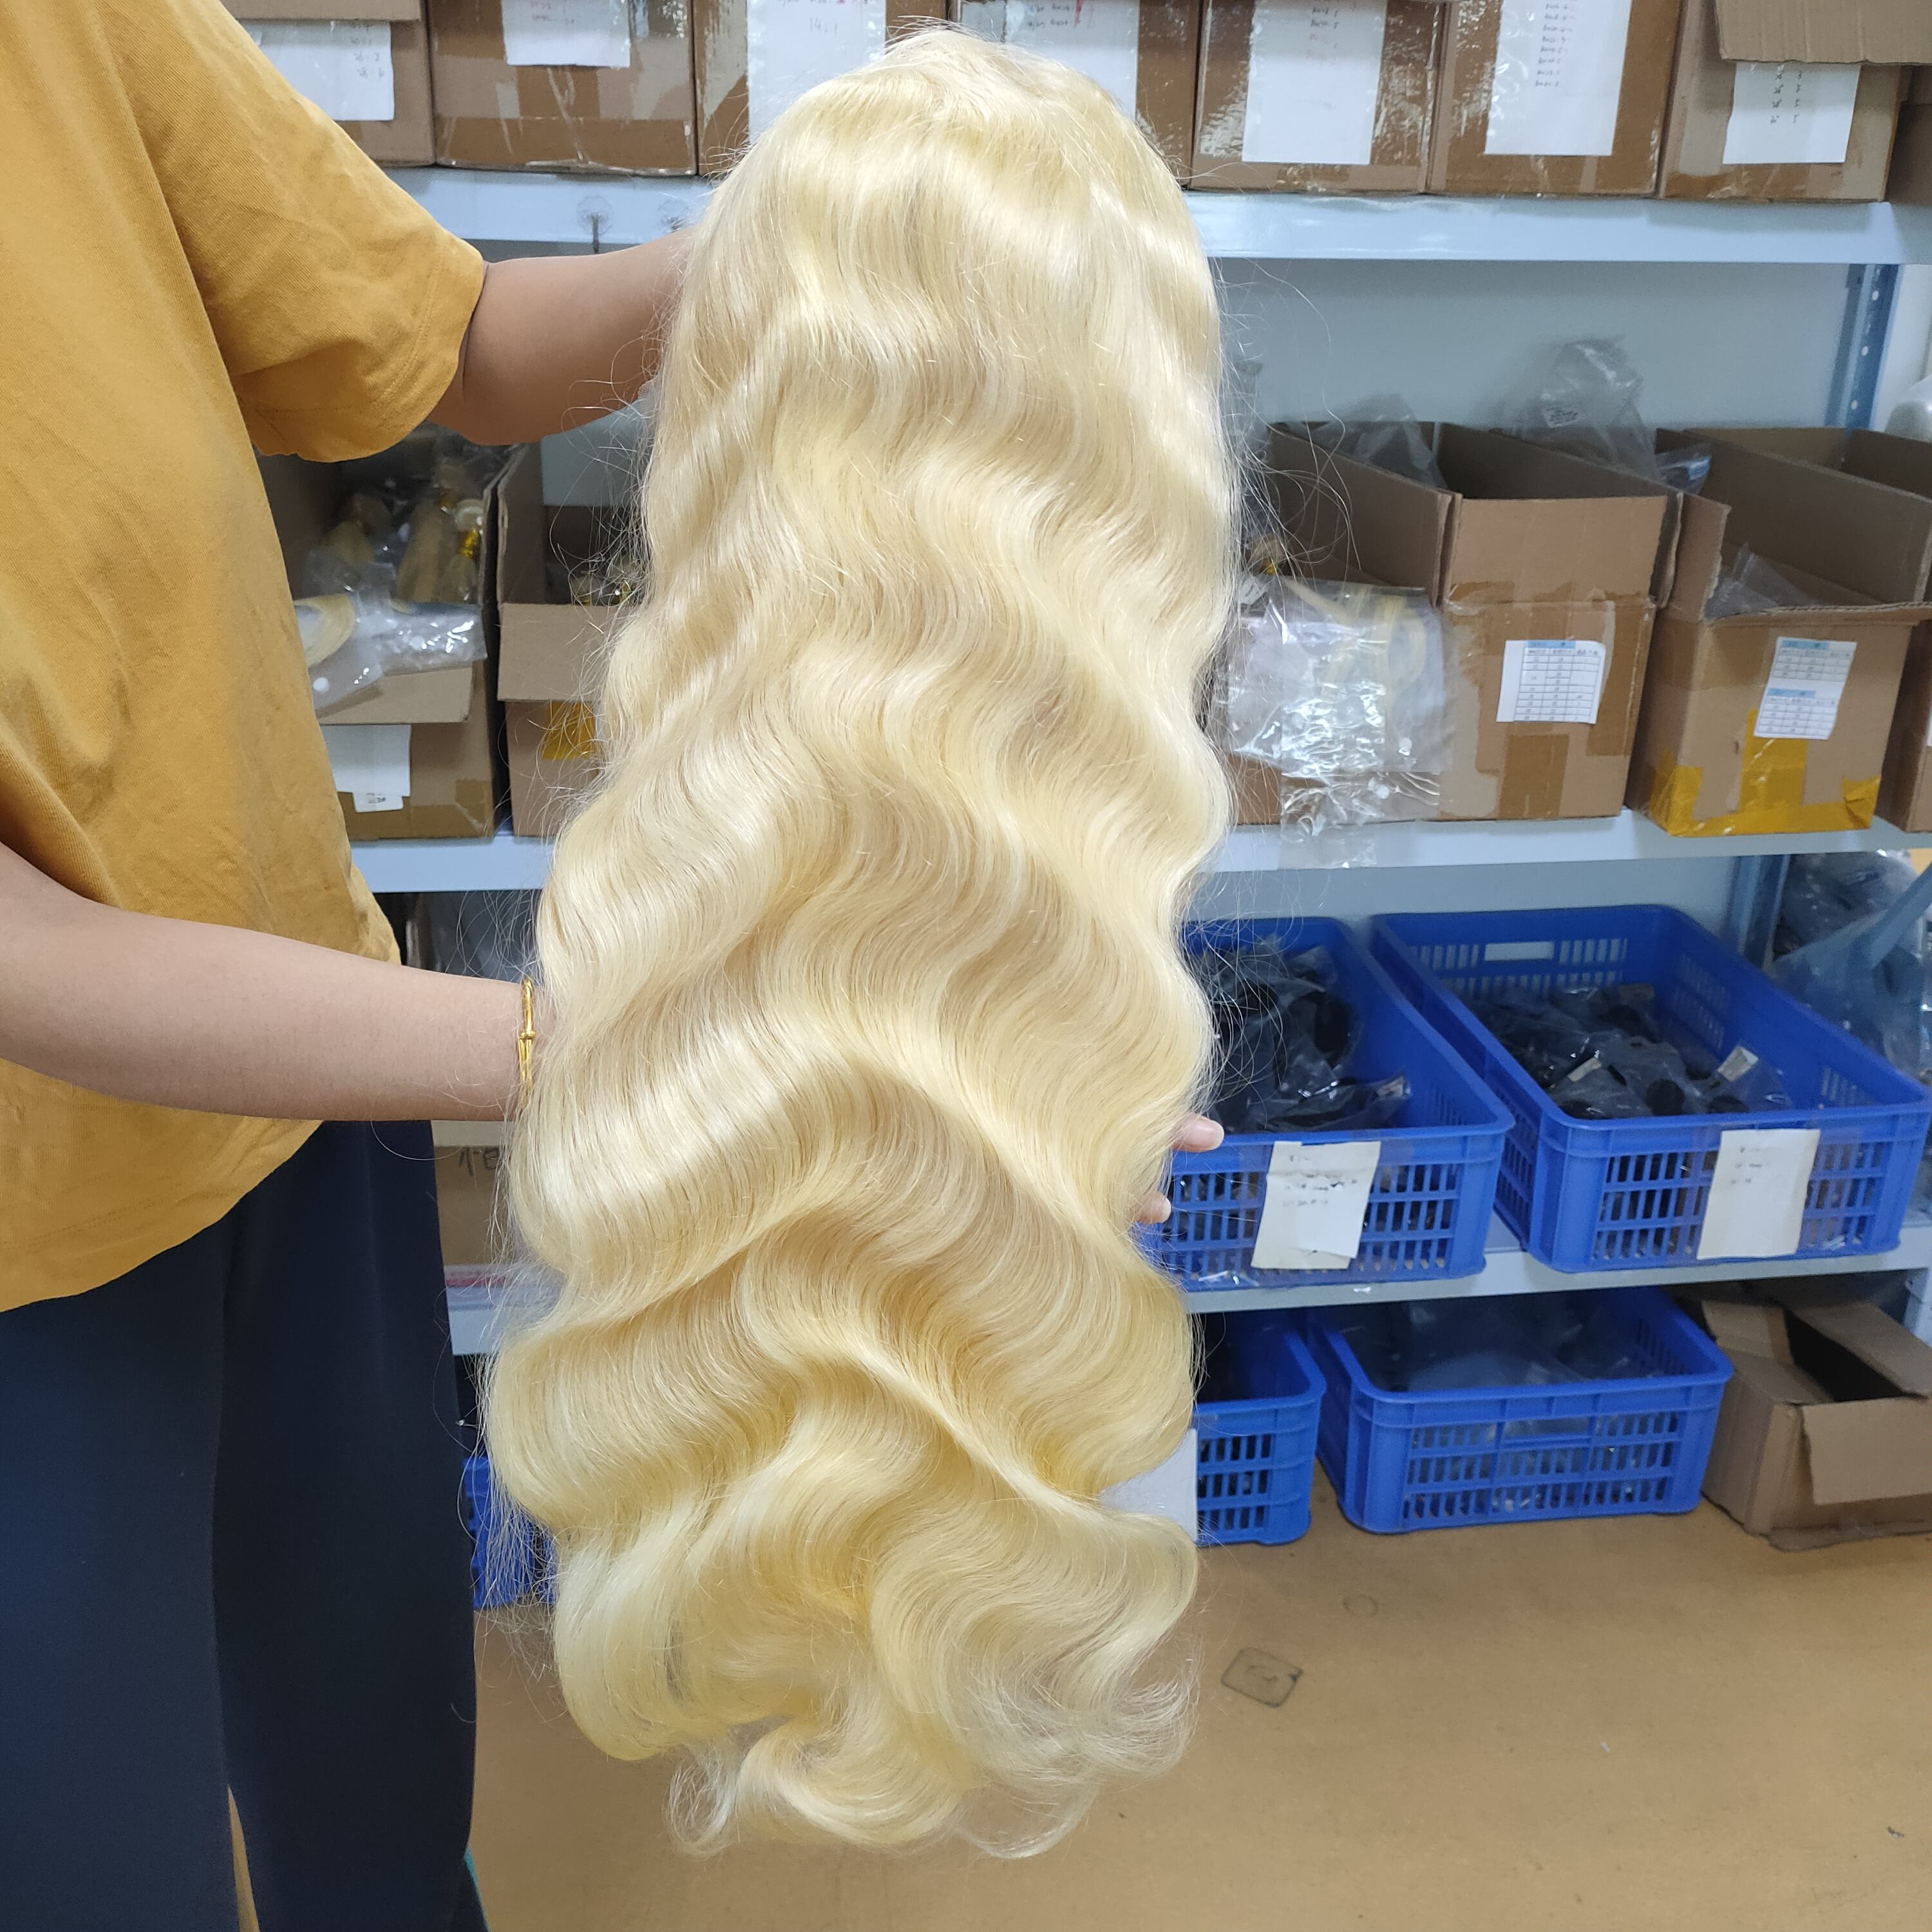 wholesale price 613 lace frontal wig 150% density body wave 100% human hair